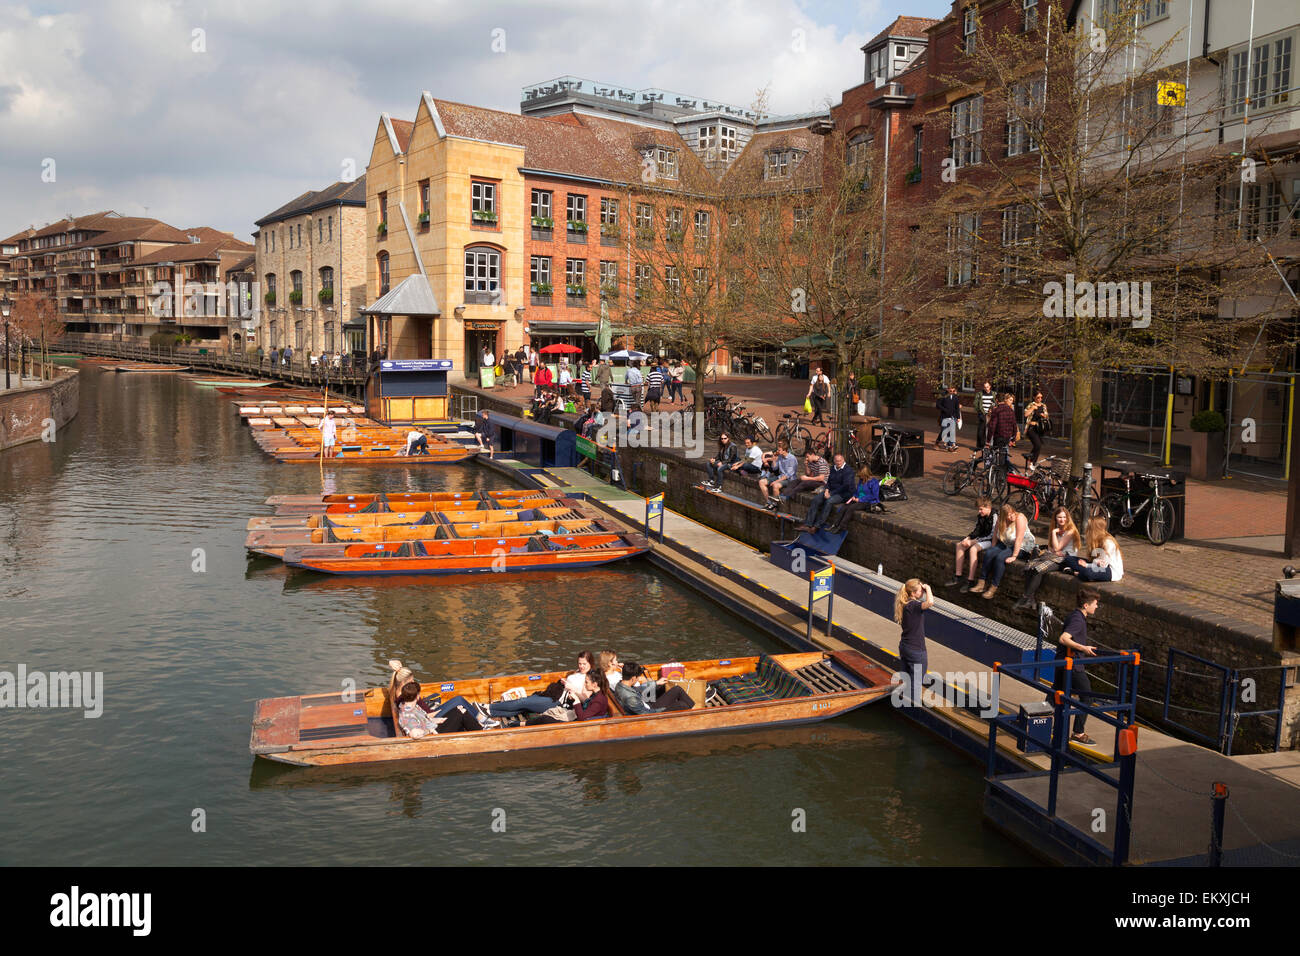 Punts and people at Magdalene Bridge on the River Cam at Cambridge, UK - Stock Image